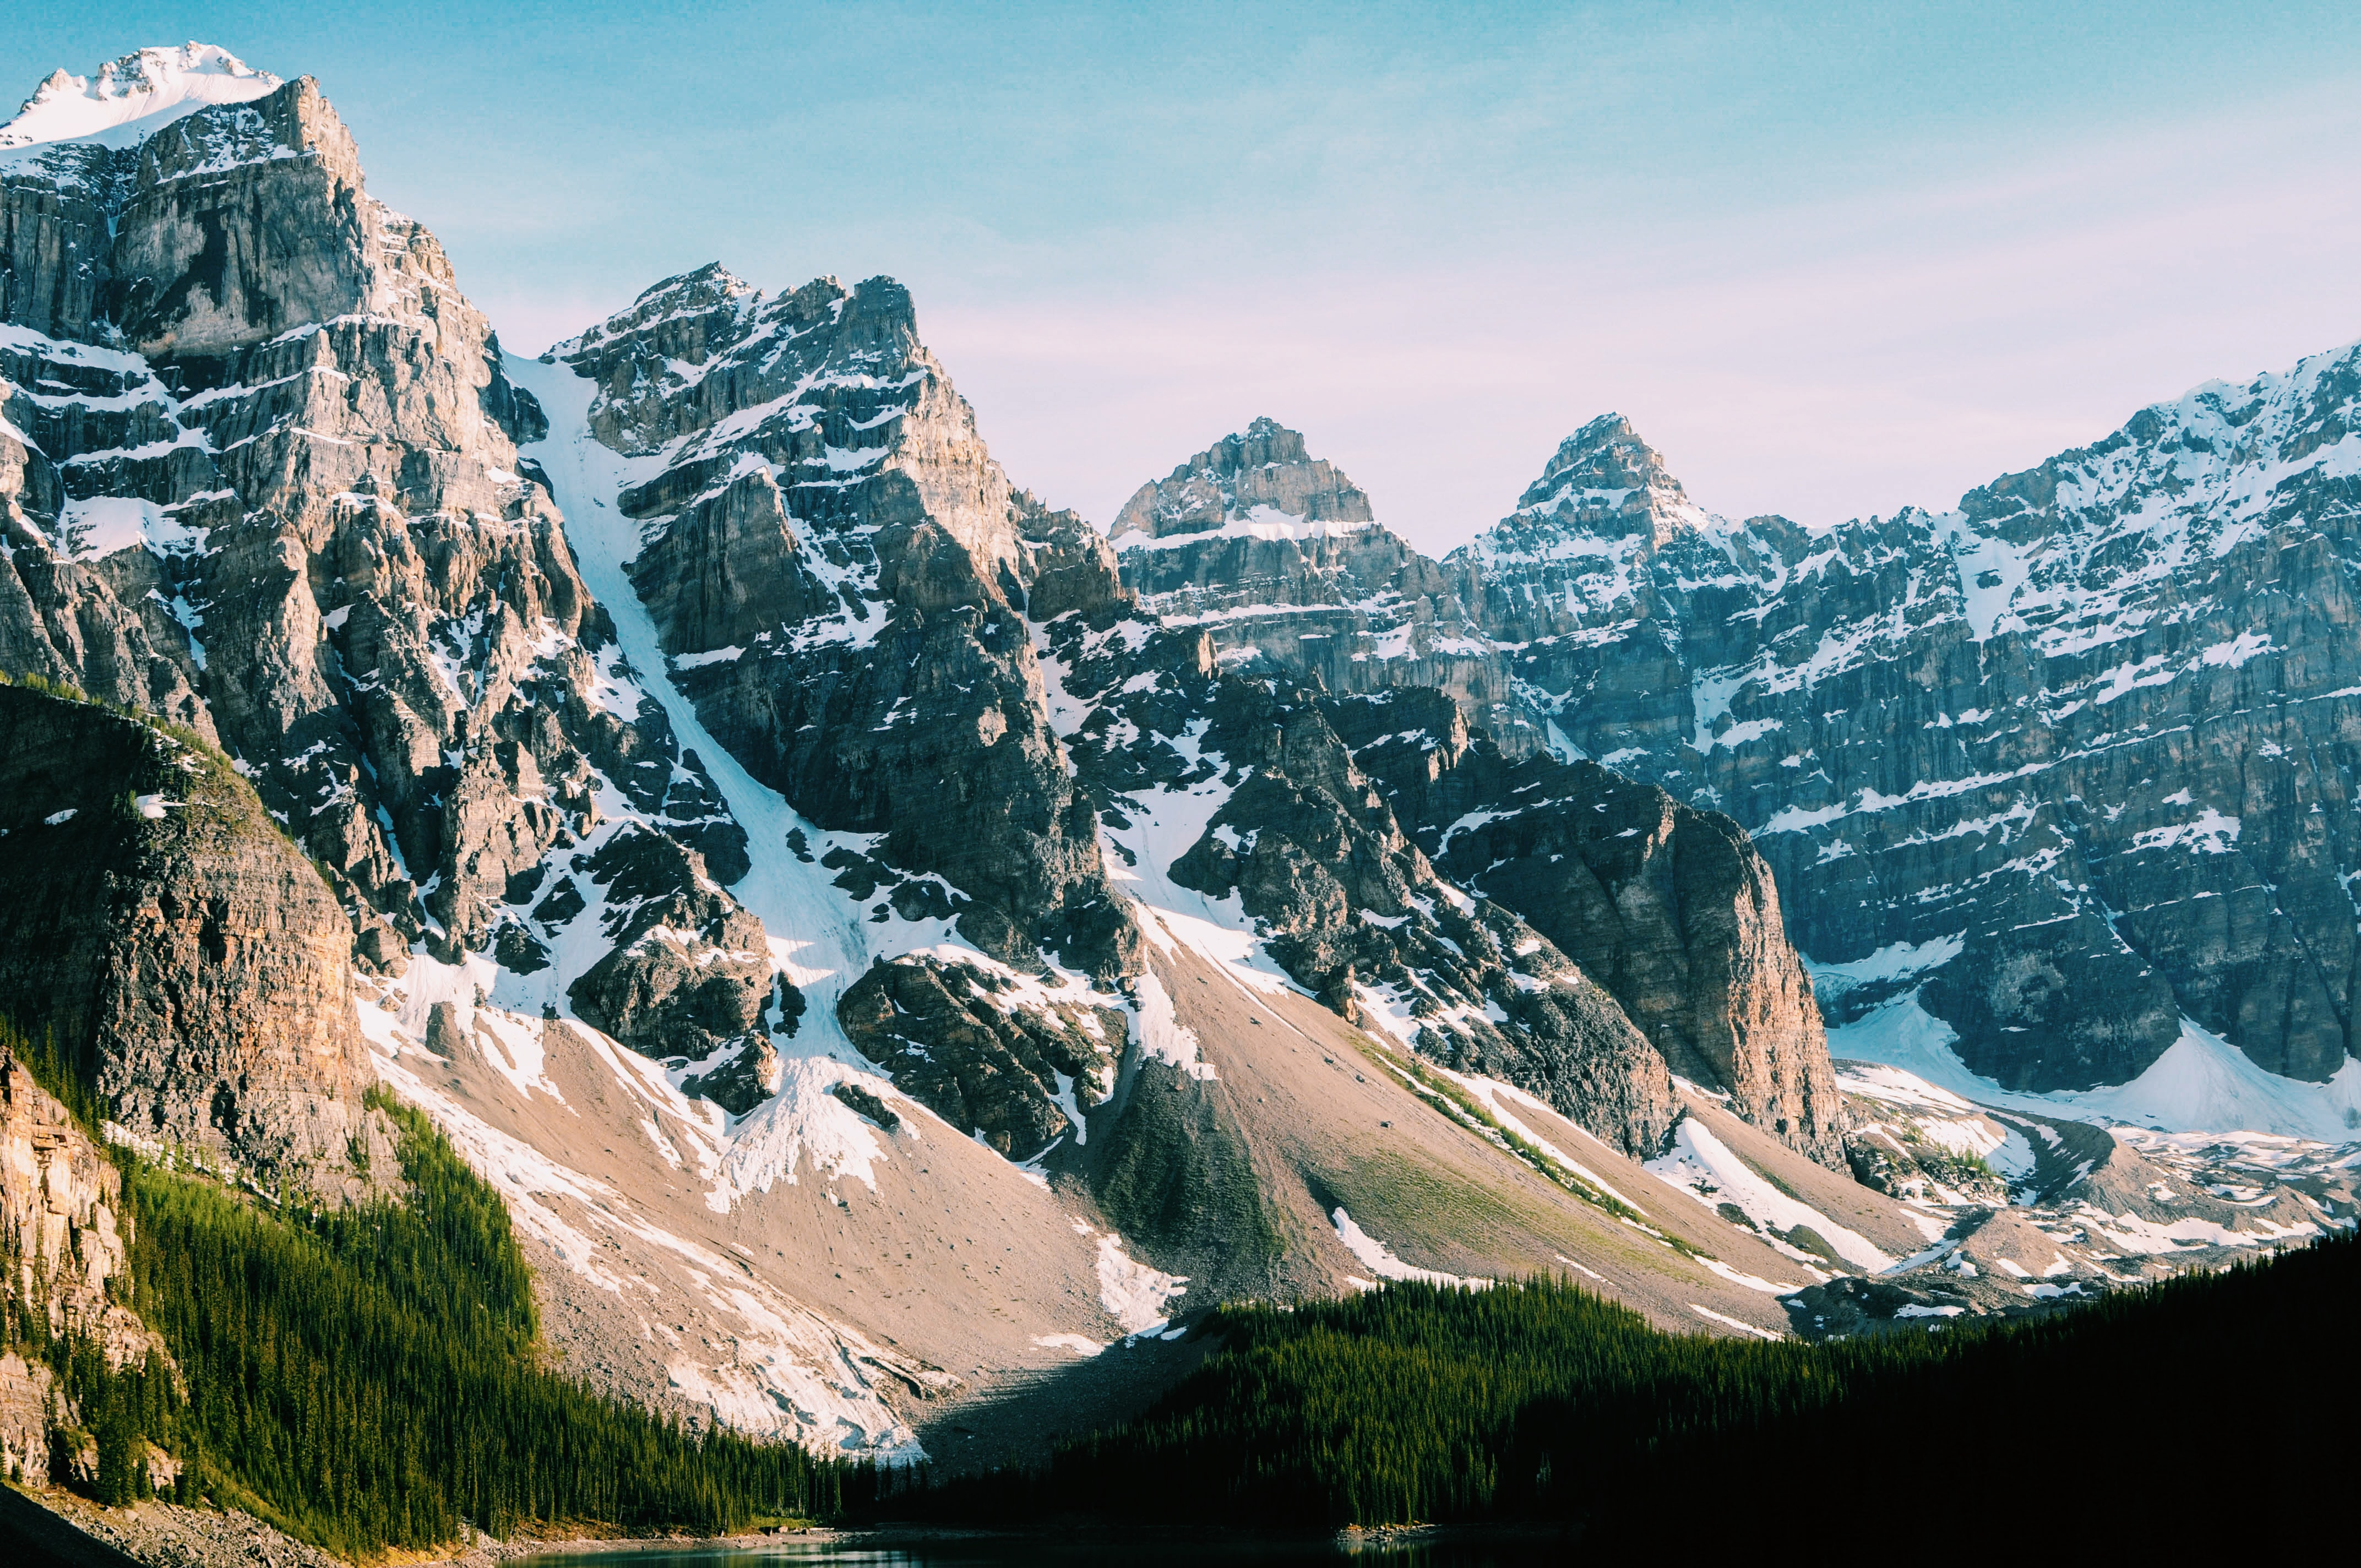 Moraine Lake and the surrounding forests and snowy mountain ridges